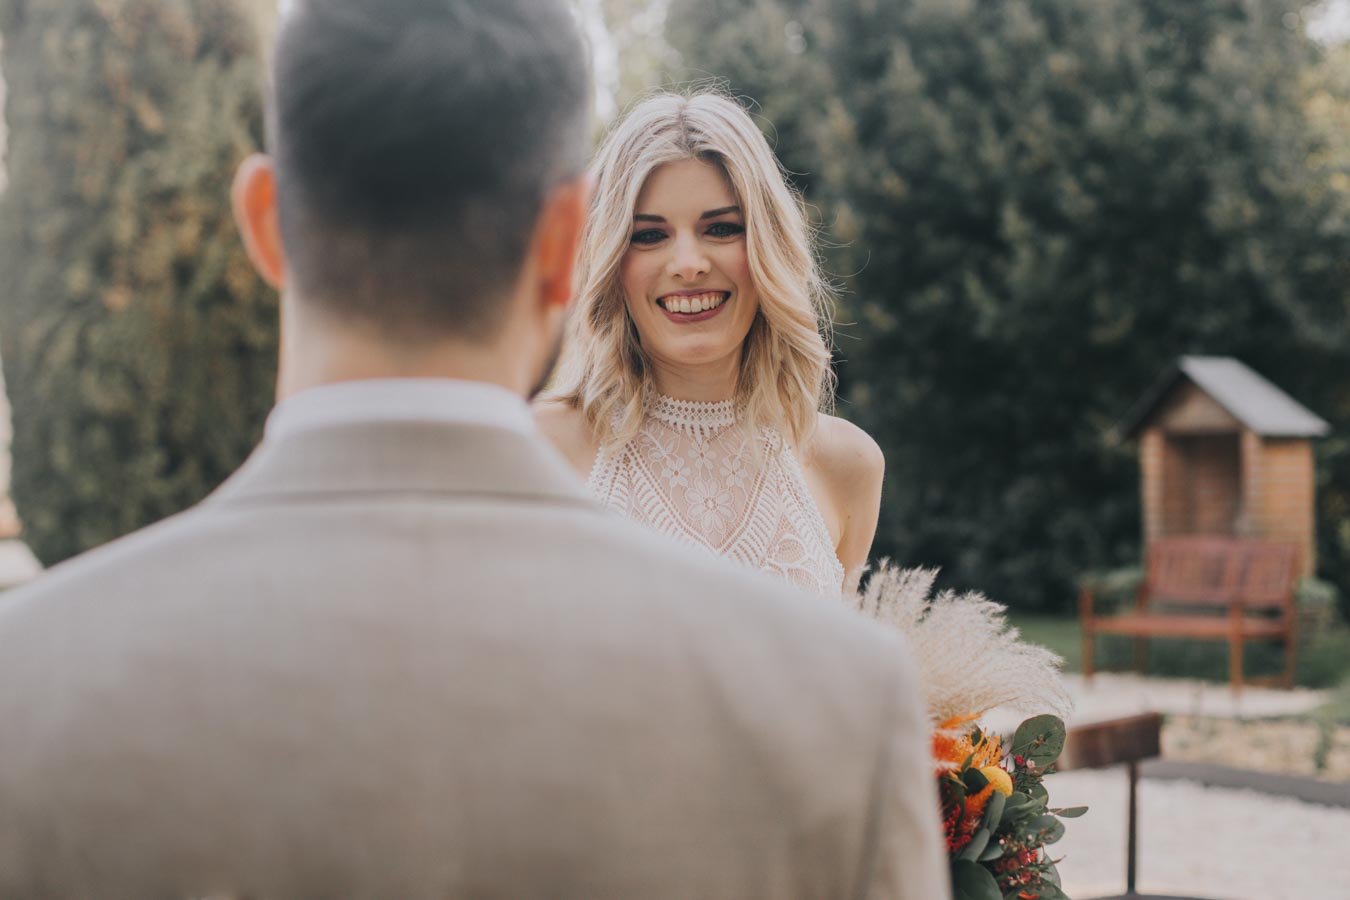 Colourful Wedding Ideas: A Vintage Country Rock Inspired Shoot